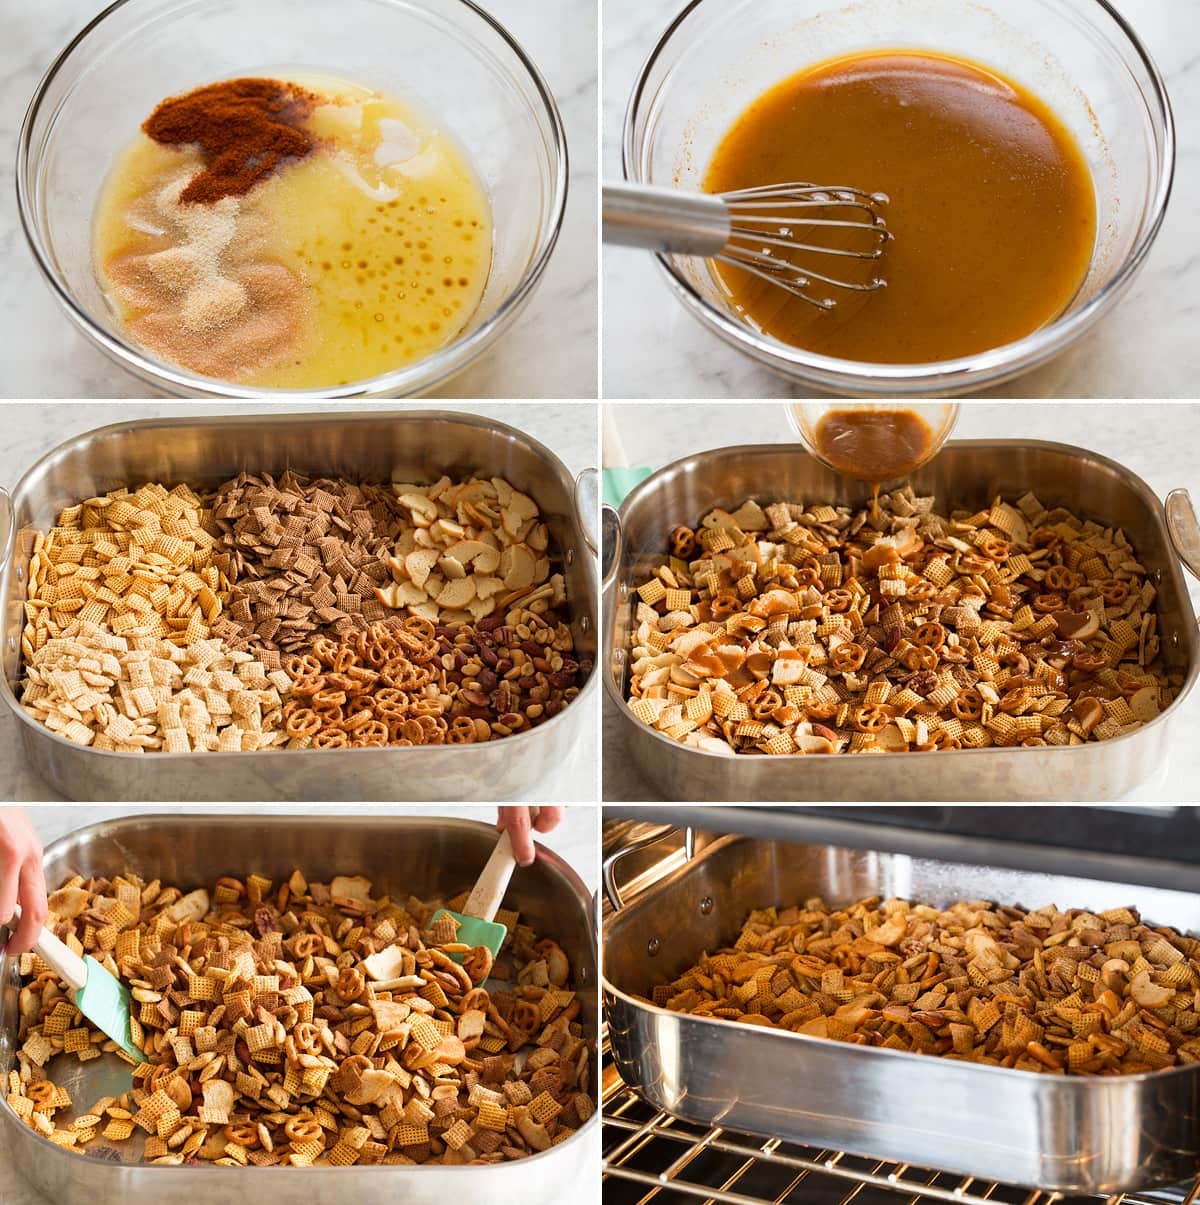 Collage of six images showing steps to preparing chex mix in the oven.